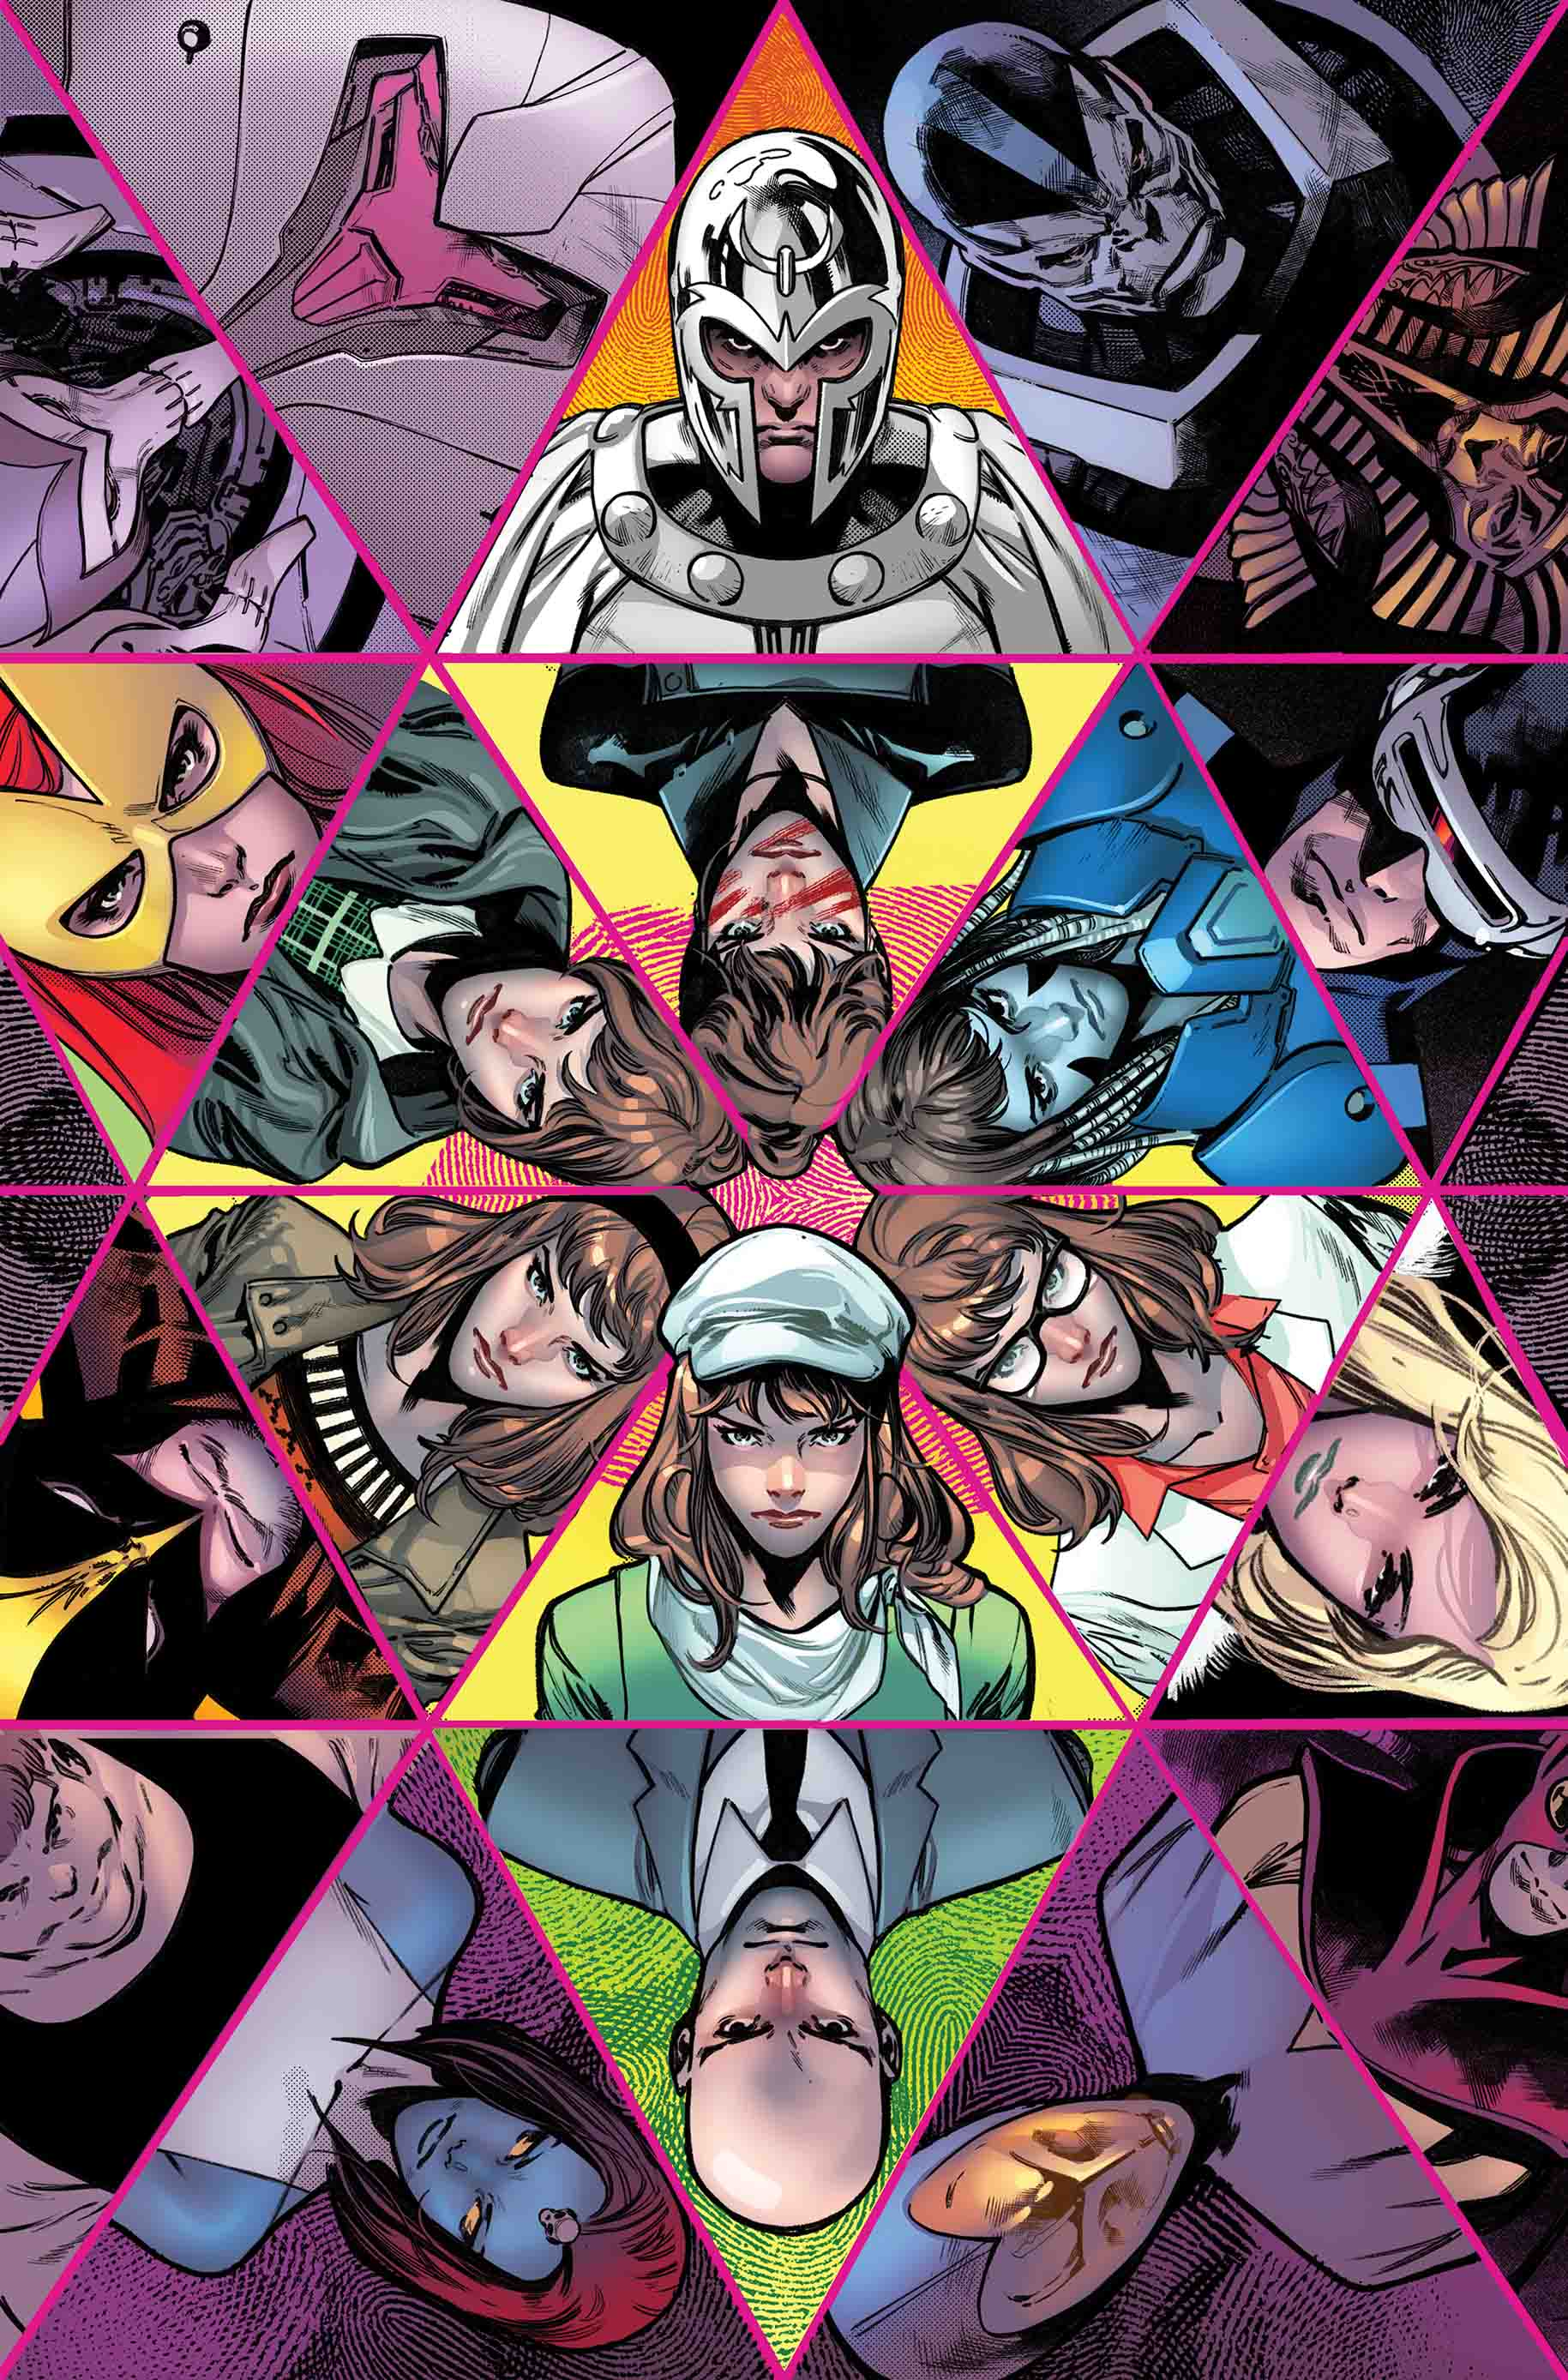 Jonathan Hickman reveals a Moira X-Men comic is on the way